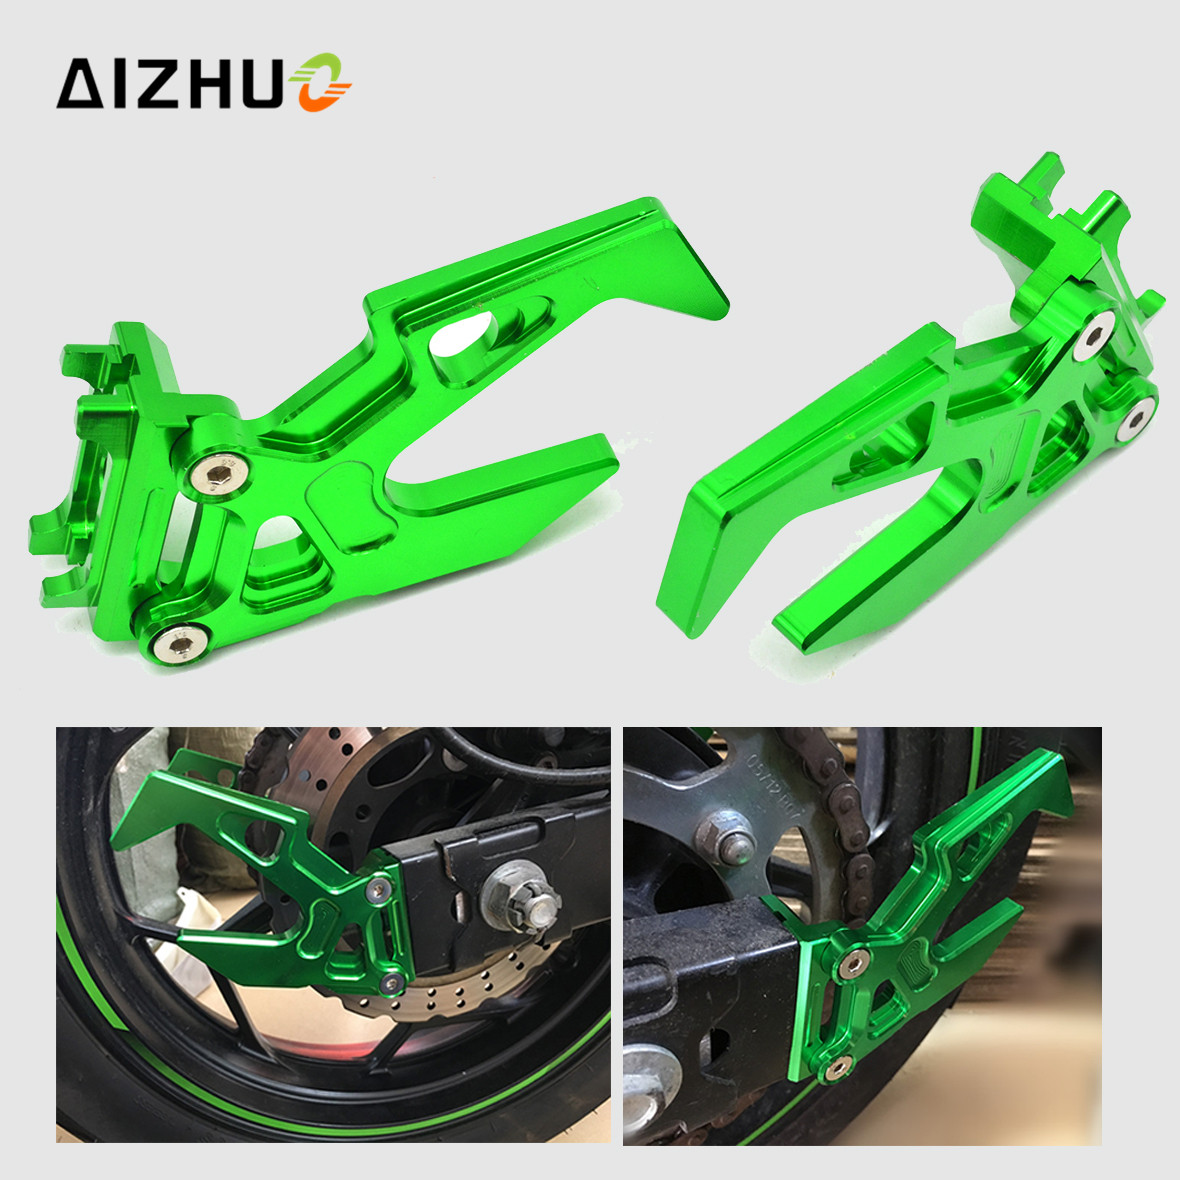 For KAWASAKI Motorcycle Chain Adjuster Tensioner Autobike Chain Regulator ninja300 ninja 300 2013 2015 2016 2014 custom designed repsol fairings for kawasaki ninja300 2013 with free shipping